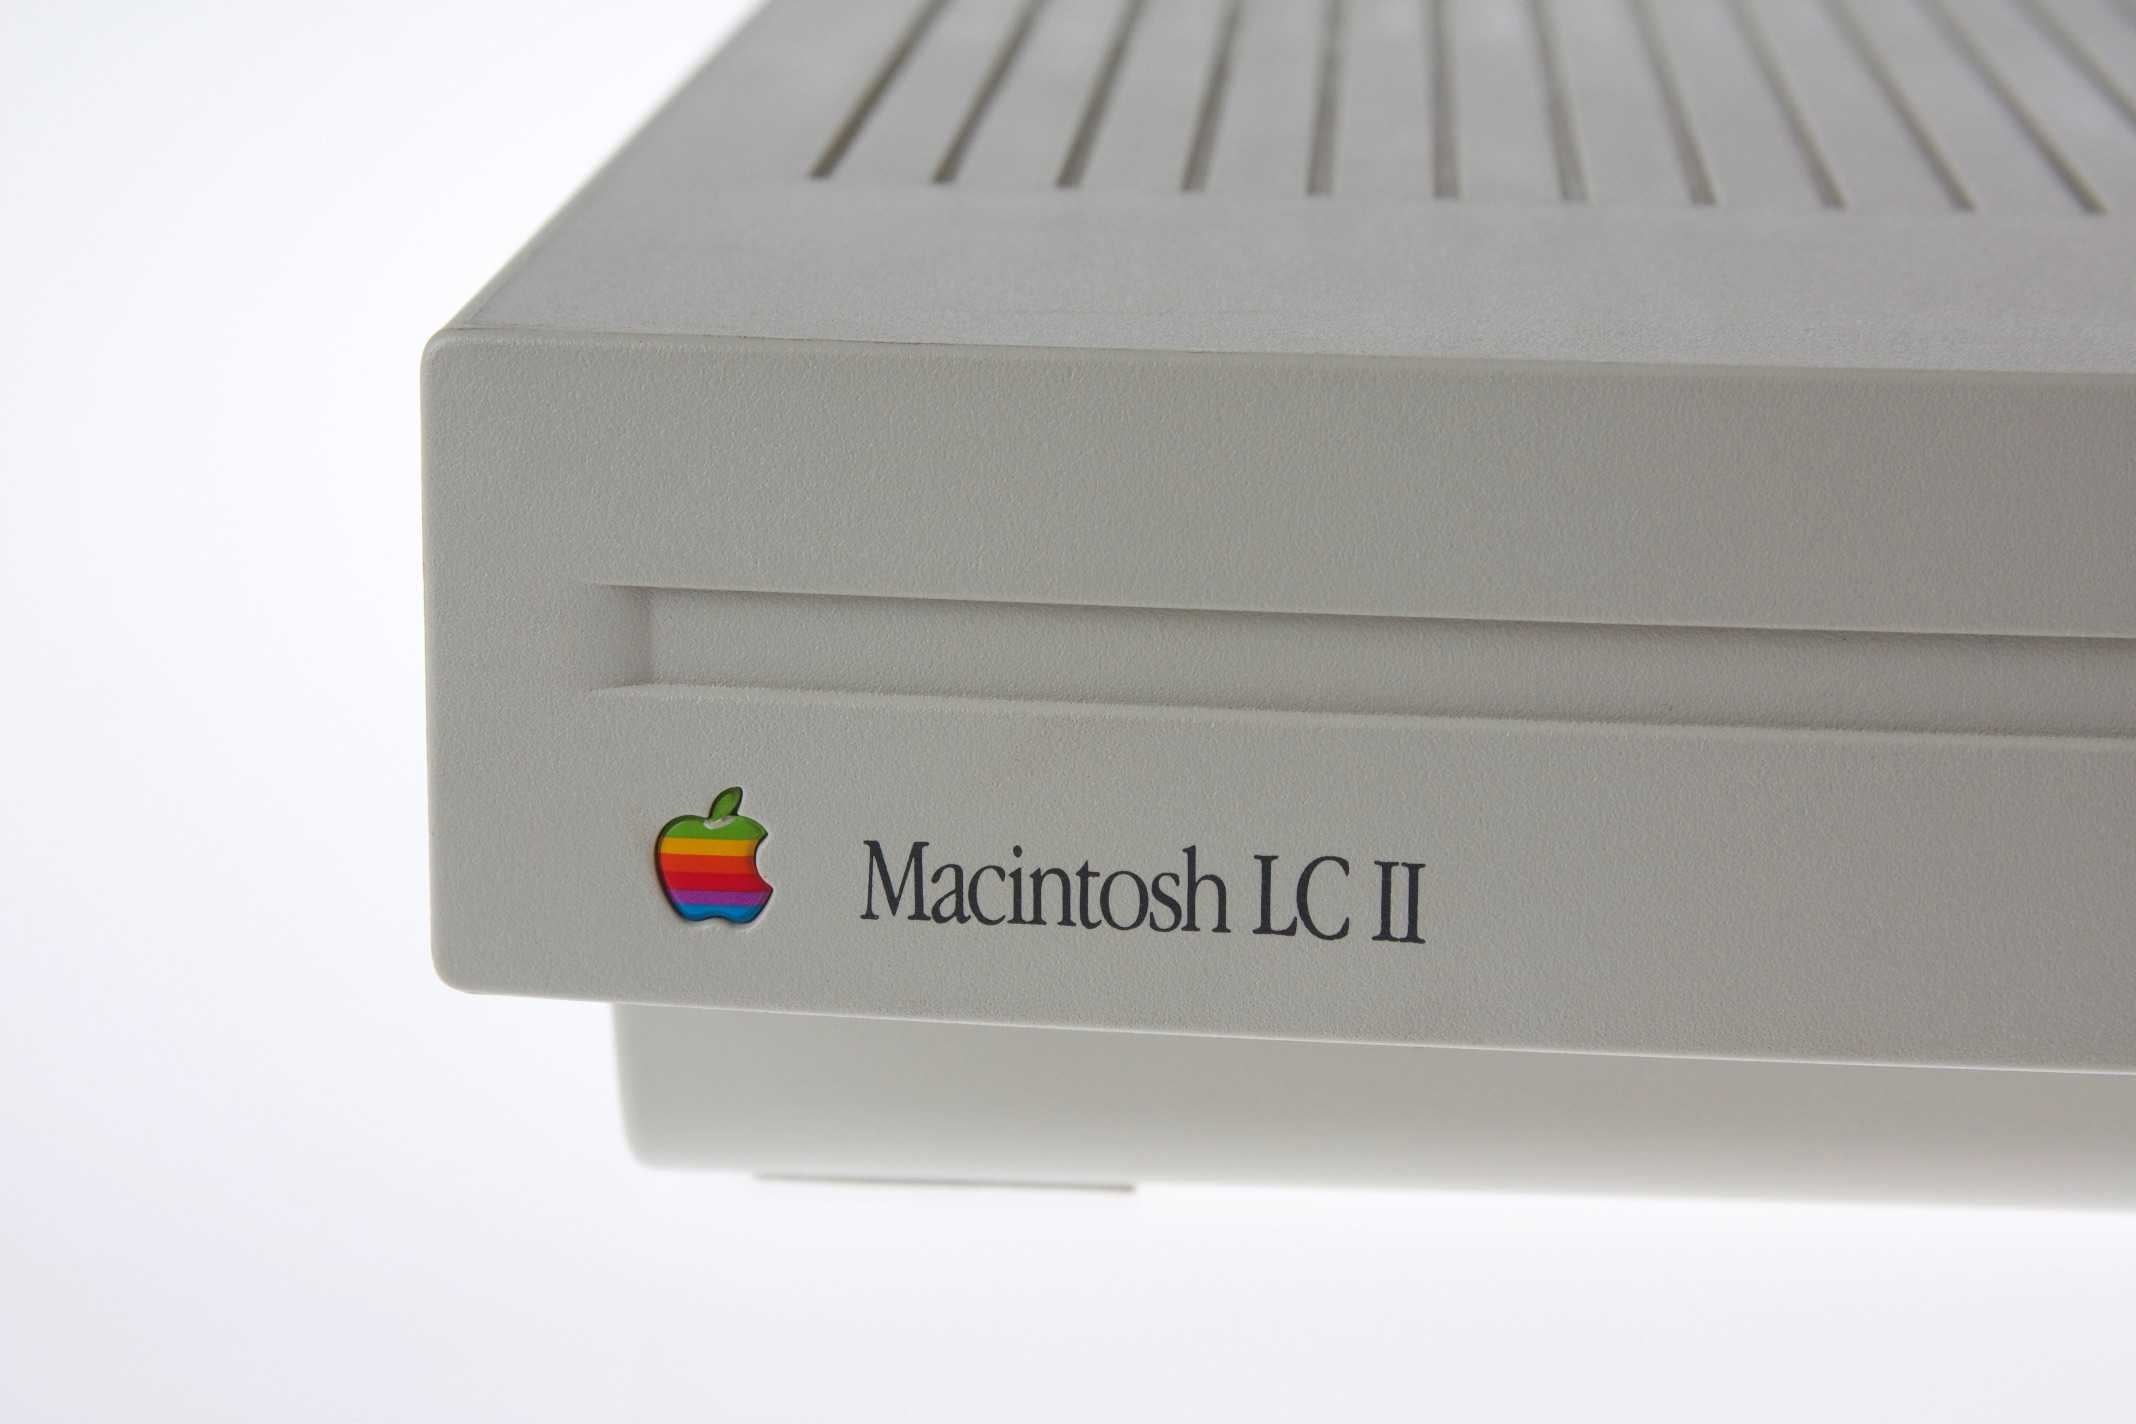 The Macintosh LC II was more powerful and cheaper than its predecessor.